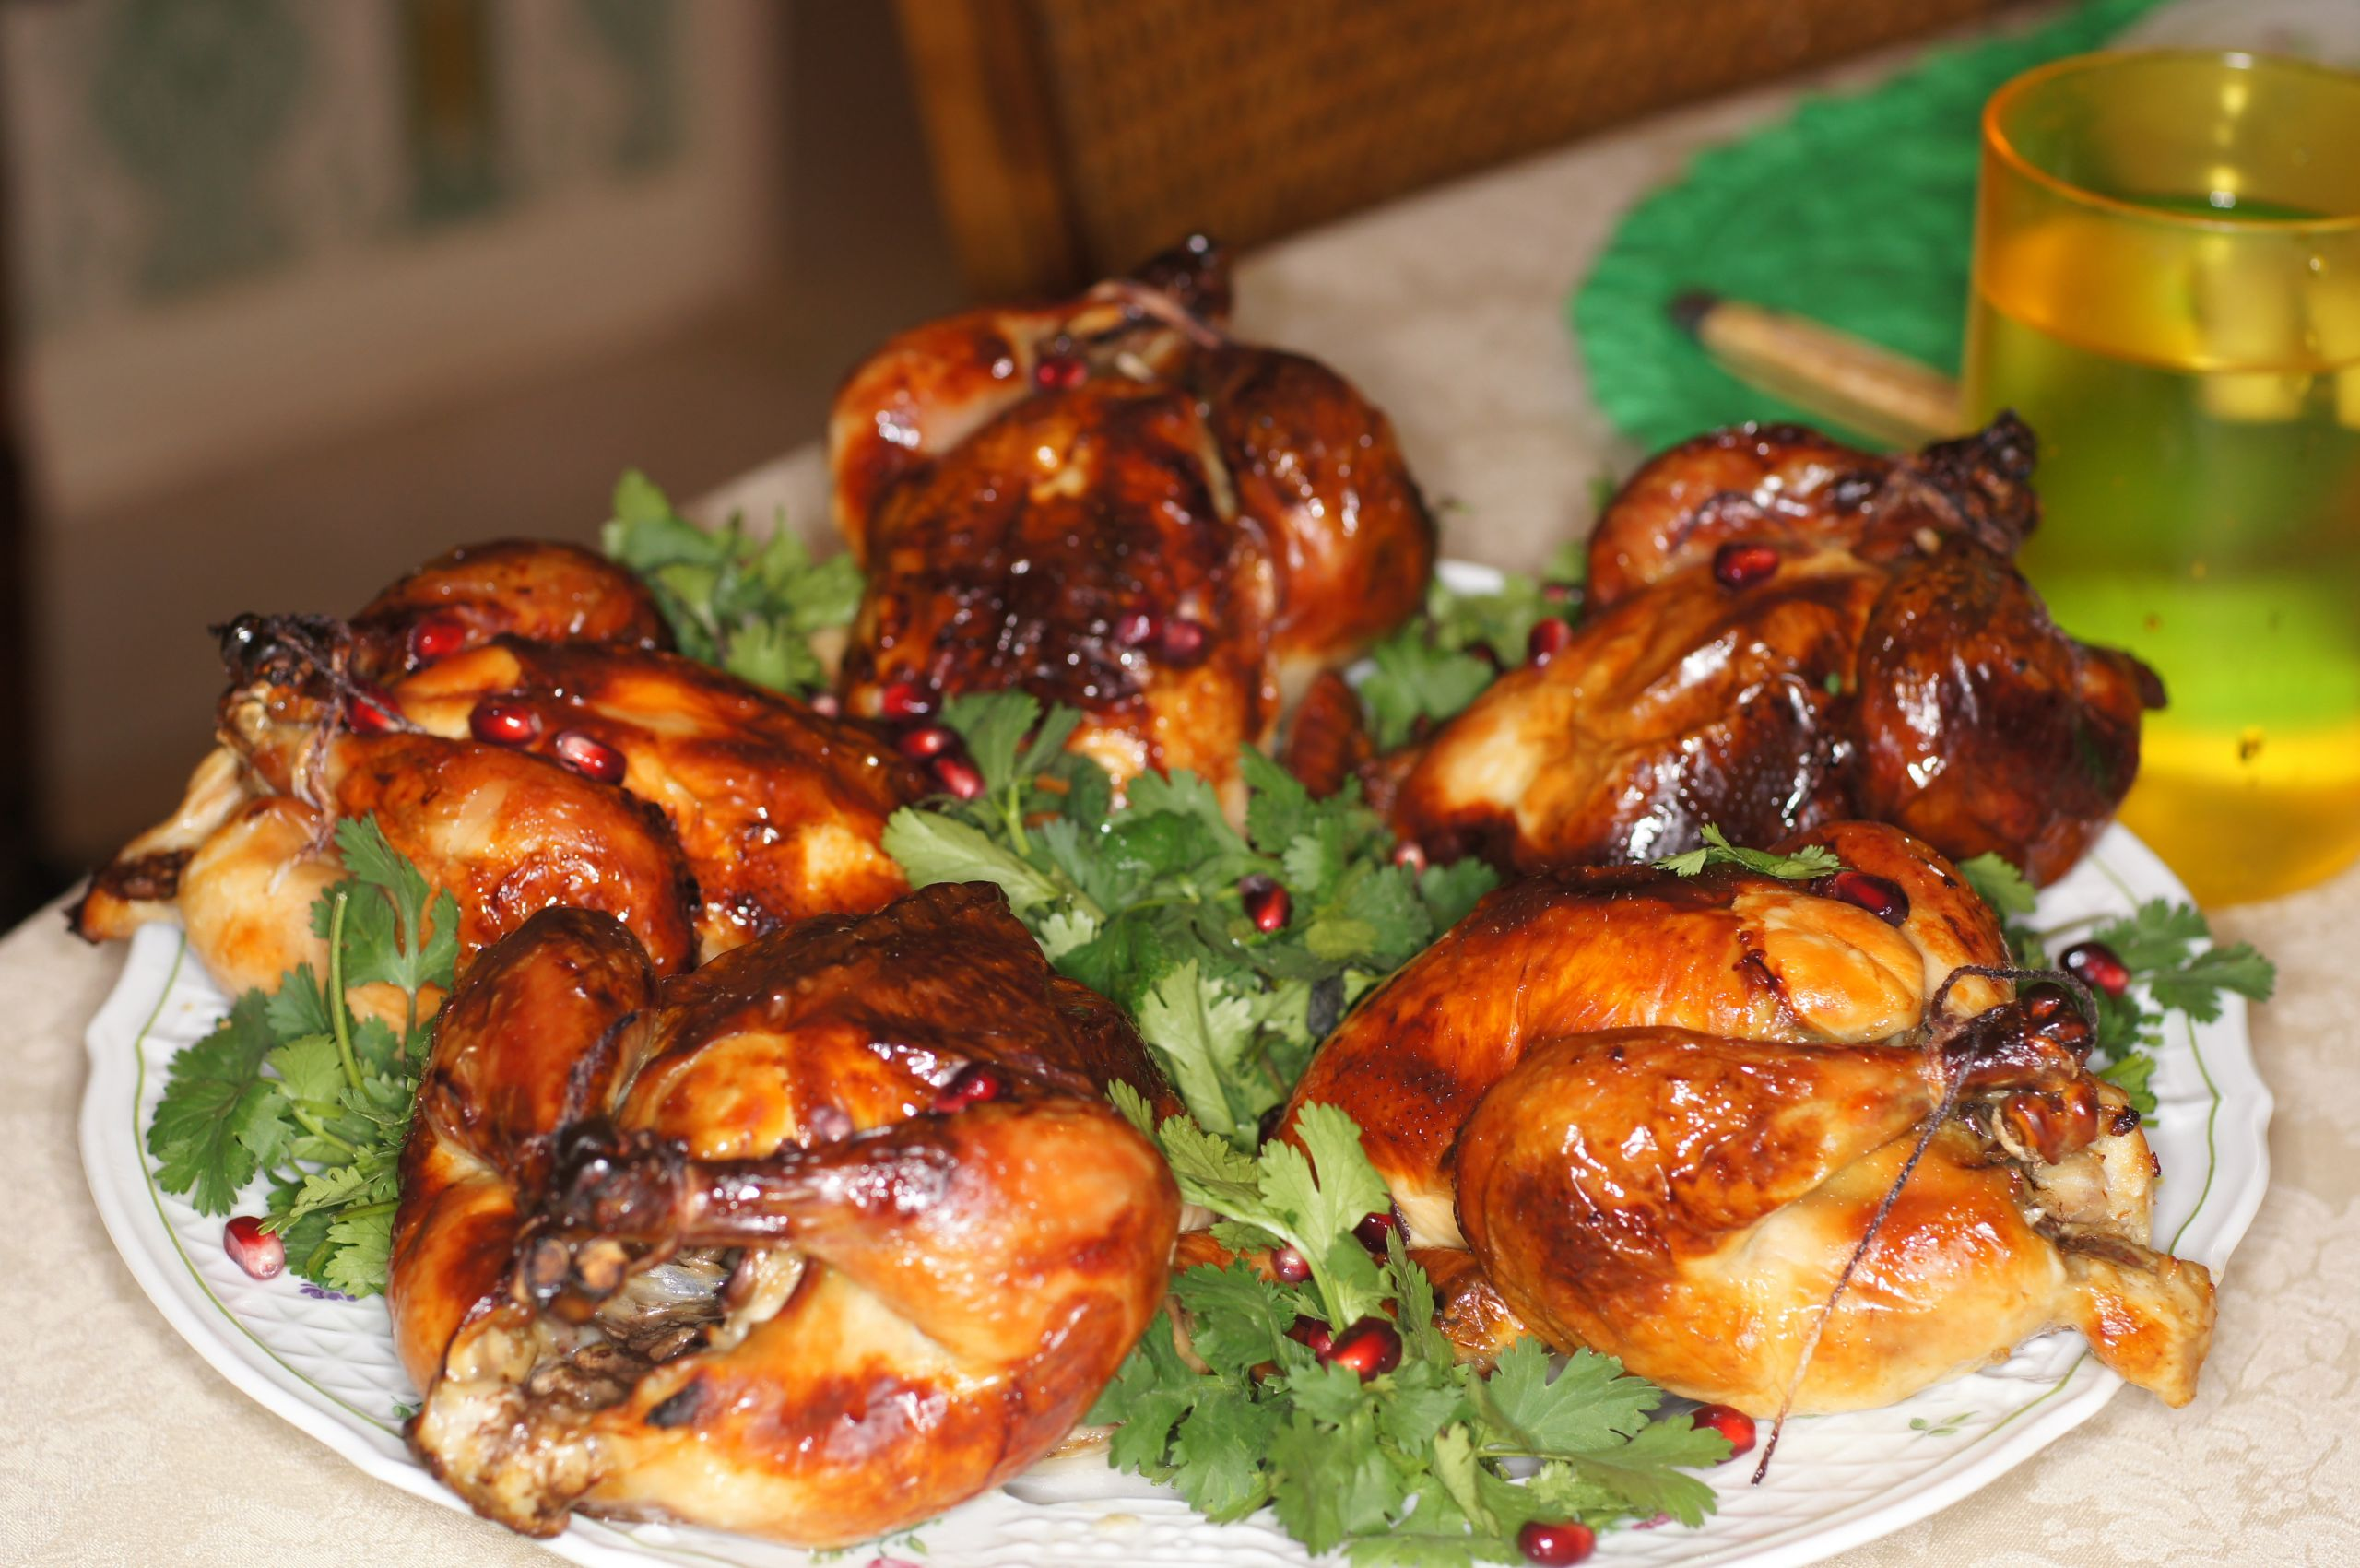 Cornish Game Hens Recipe  Roasted Brined Cornish Game Hens with Pomegranate Sauce